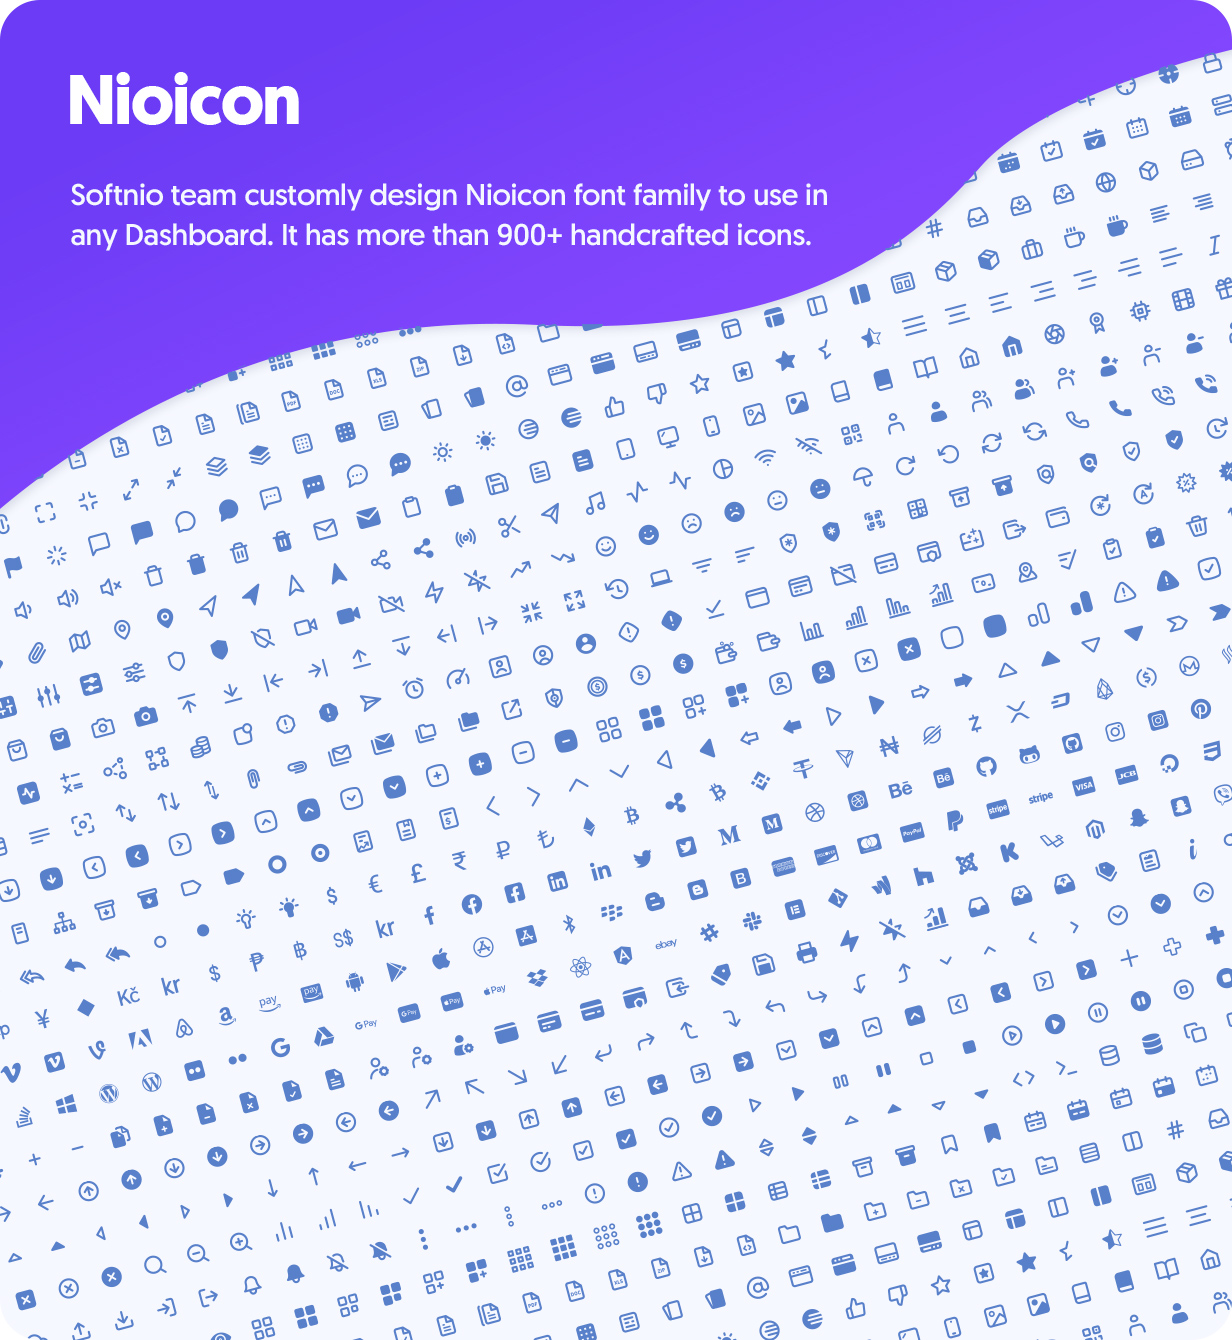 DashLite - Nioicon - Handcrafted icon set